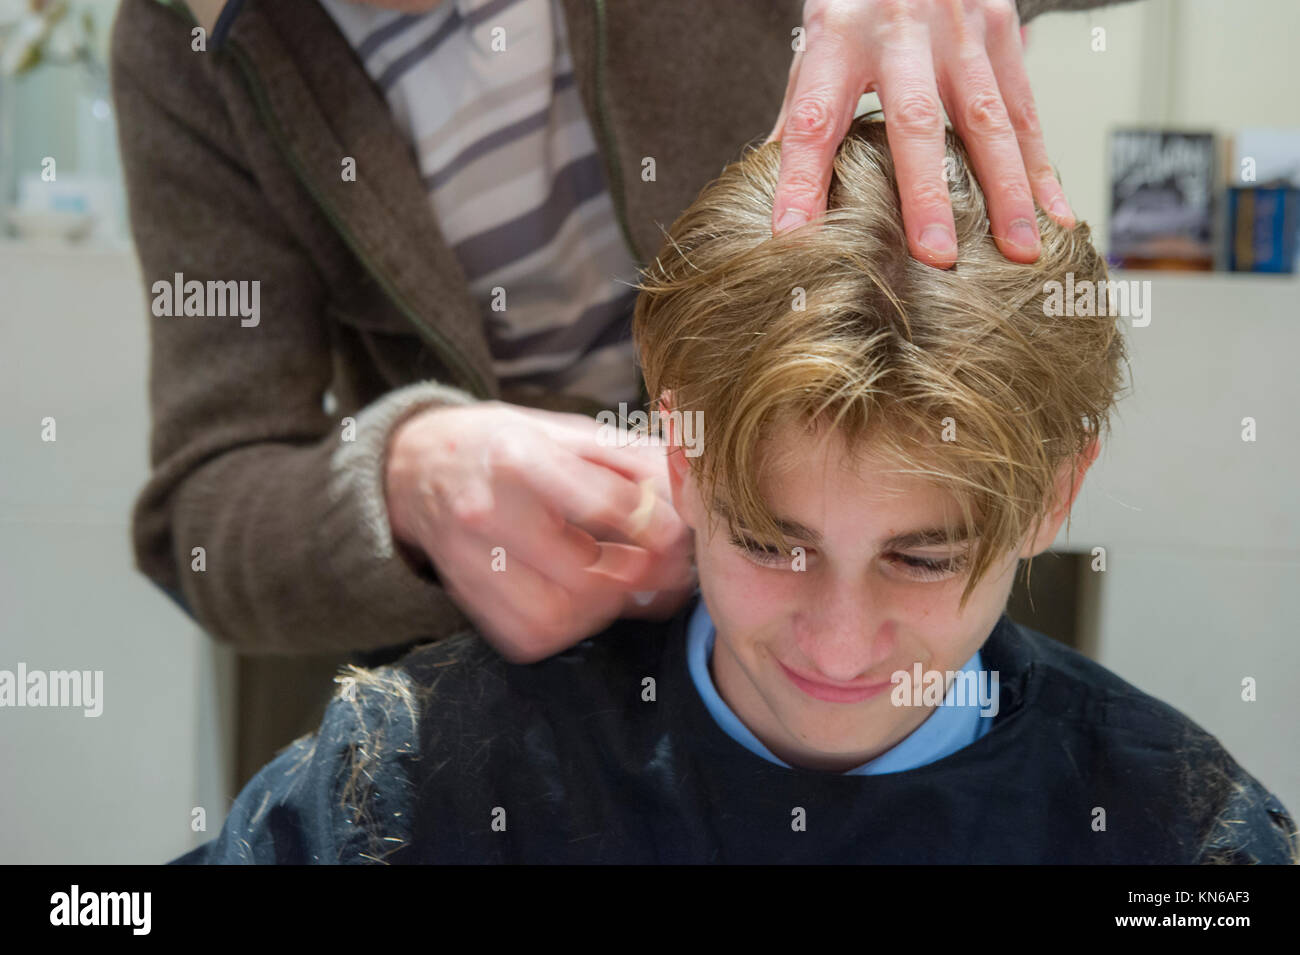 A teenage boy has his hair cut - Stock Image